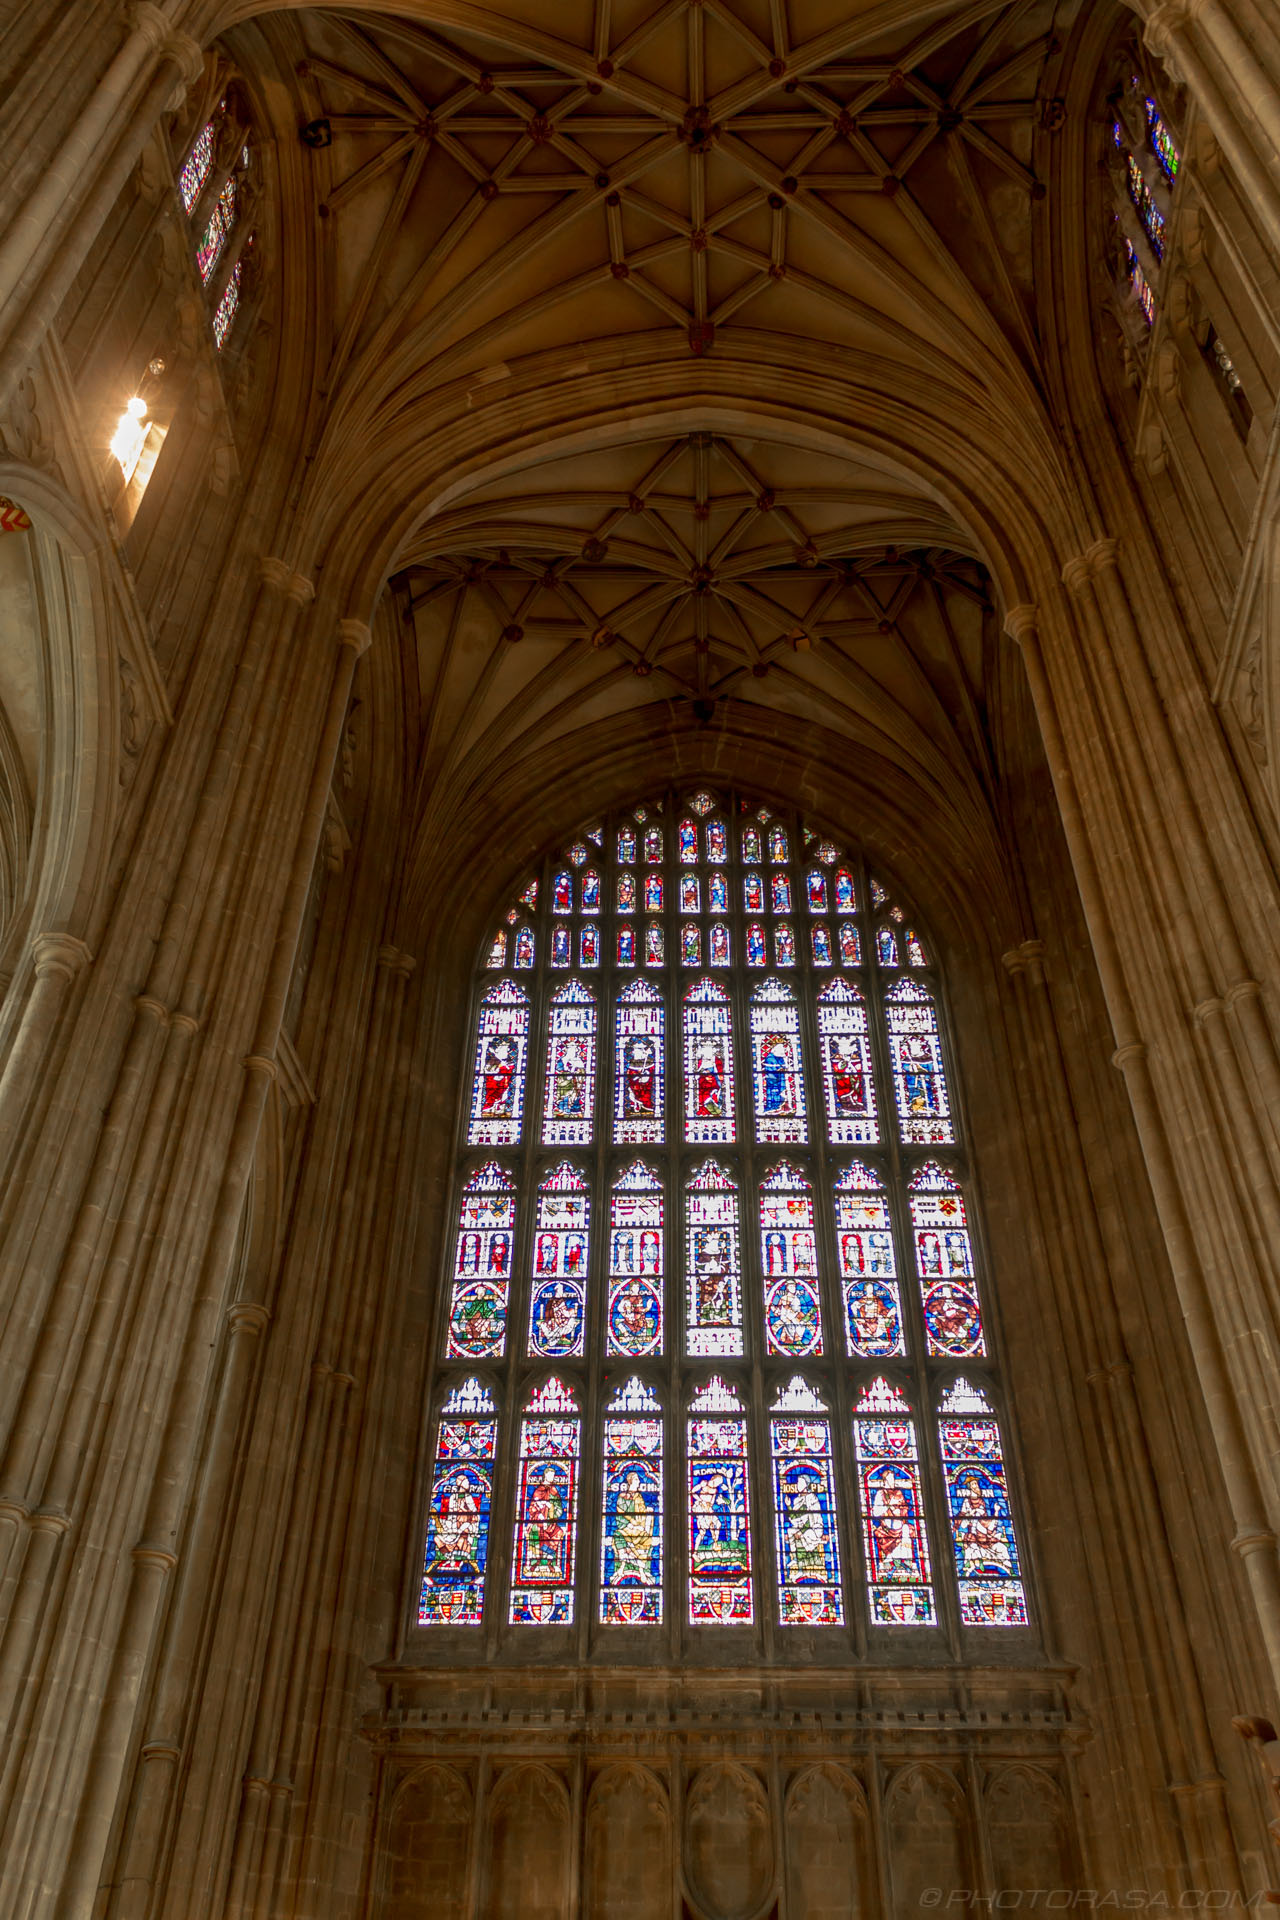 http://photorasa.com/canterbury-cathedral/stained-glass-above-western-entrance/